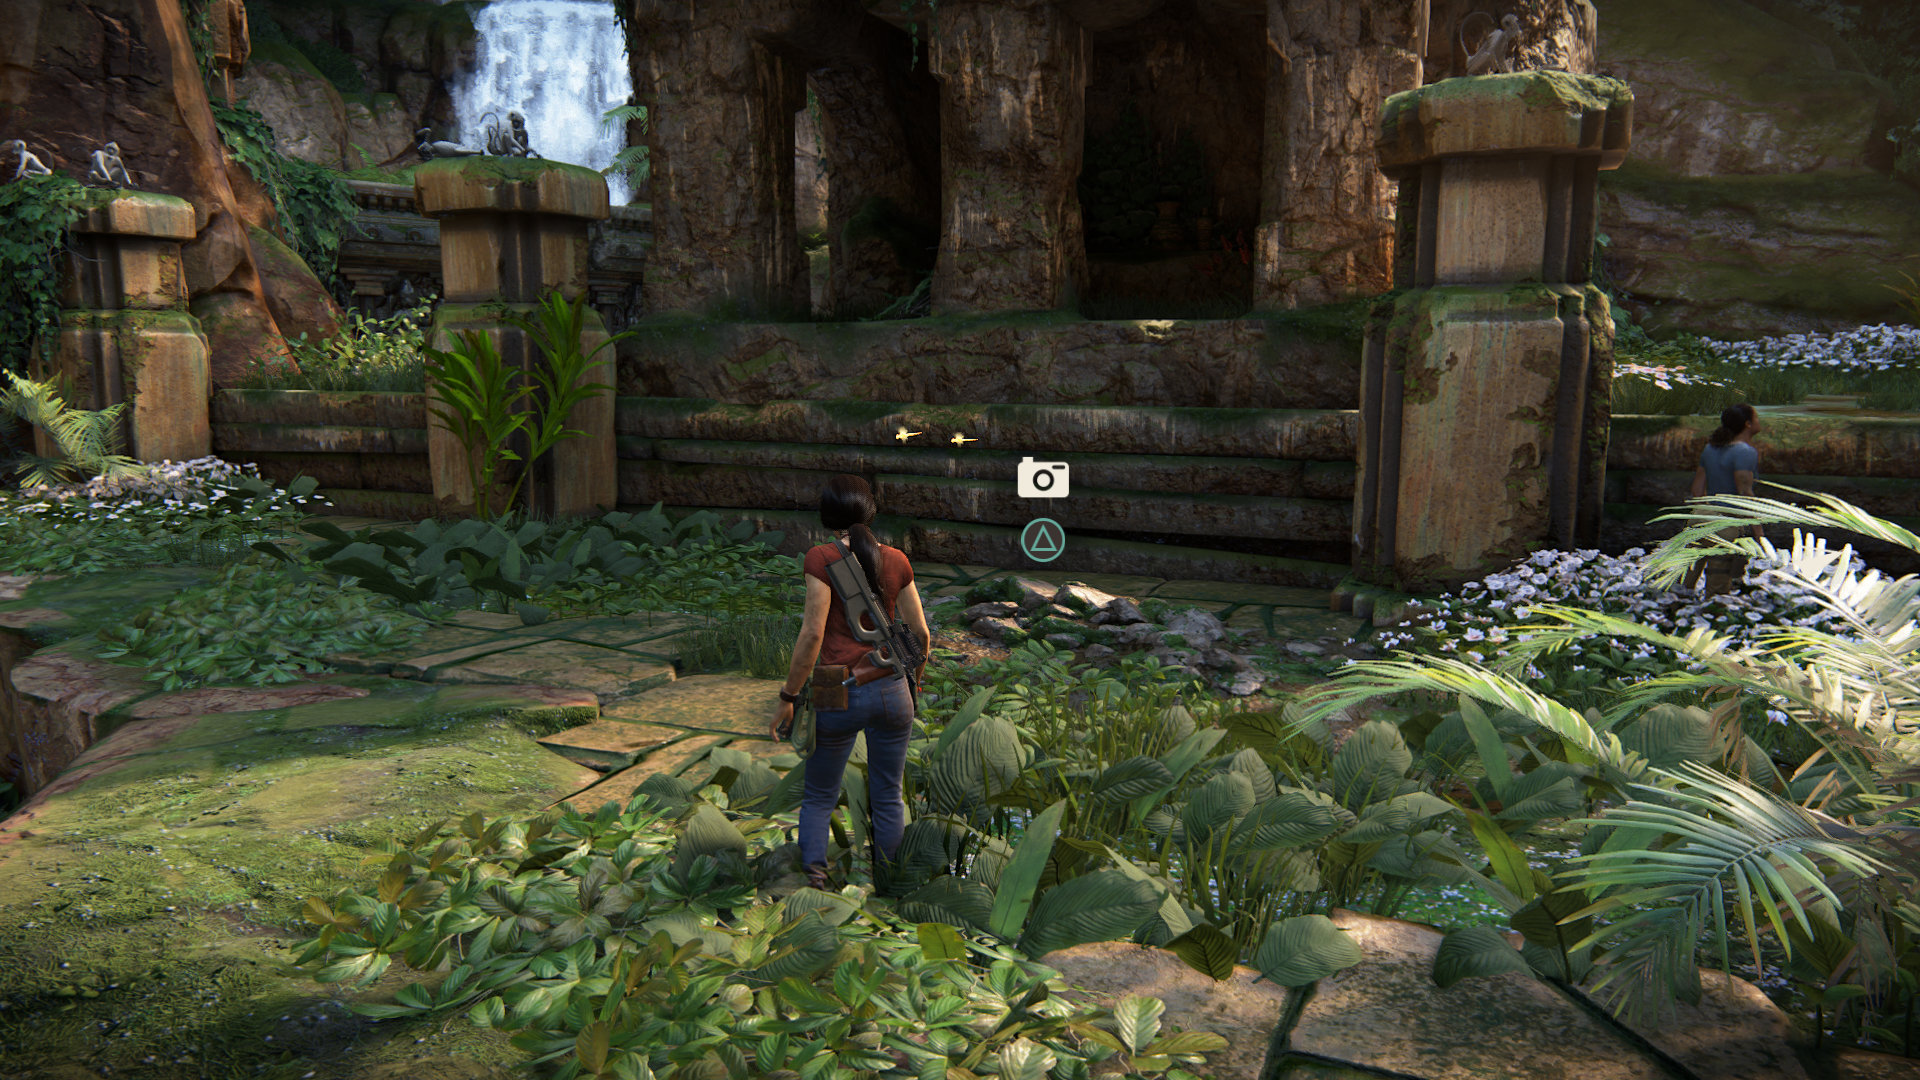 Uncharted The Lost Legacy All Photo Opportunities Tldr Games Ps4uncharted Reg 3